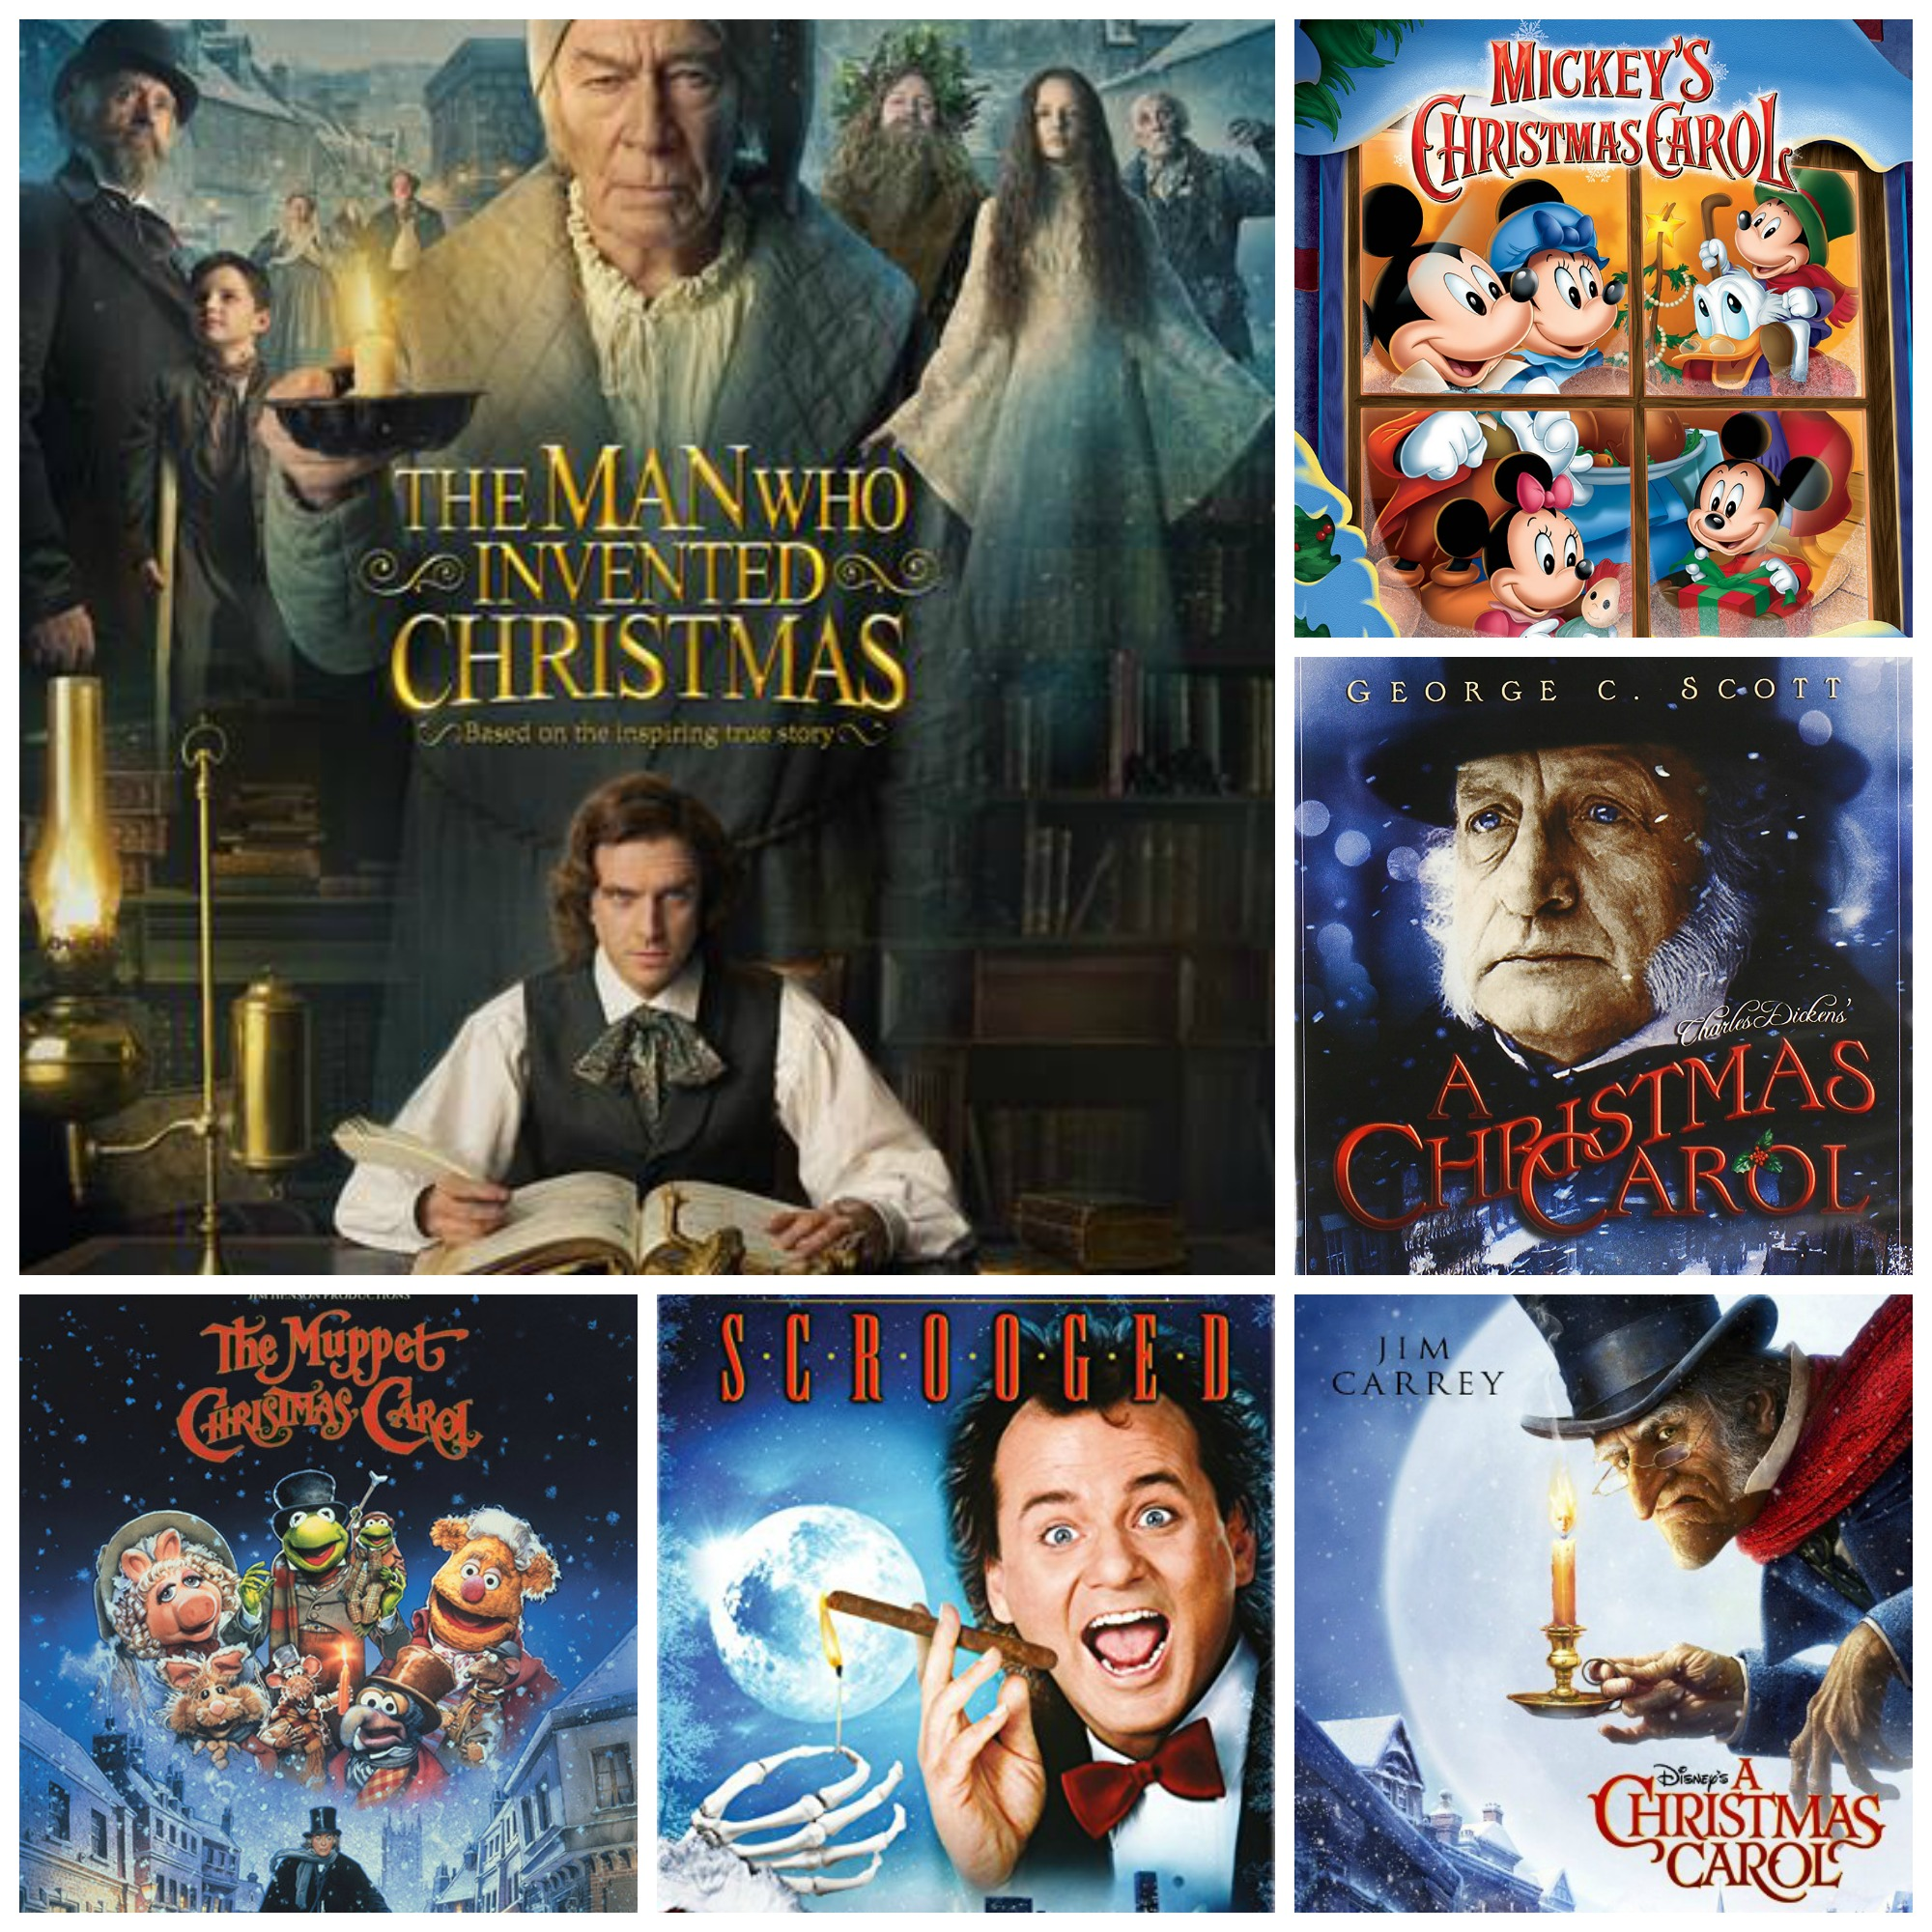 A Christmas Carol Movie.A Christmas Carol Movies A Holiday List Of Family Favorites